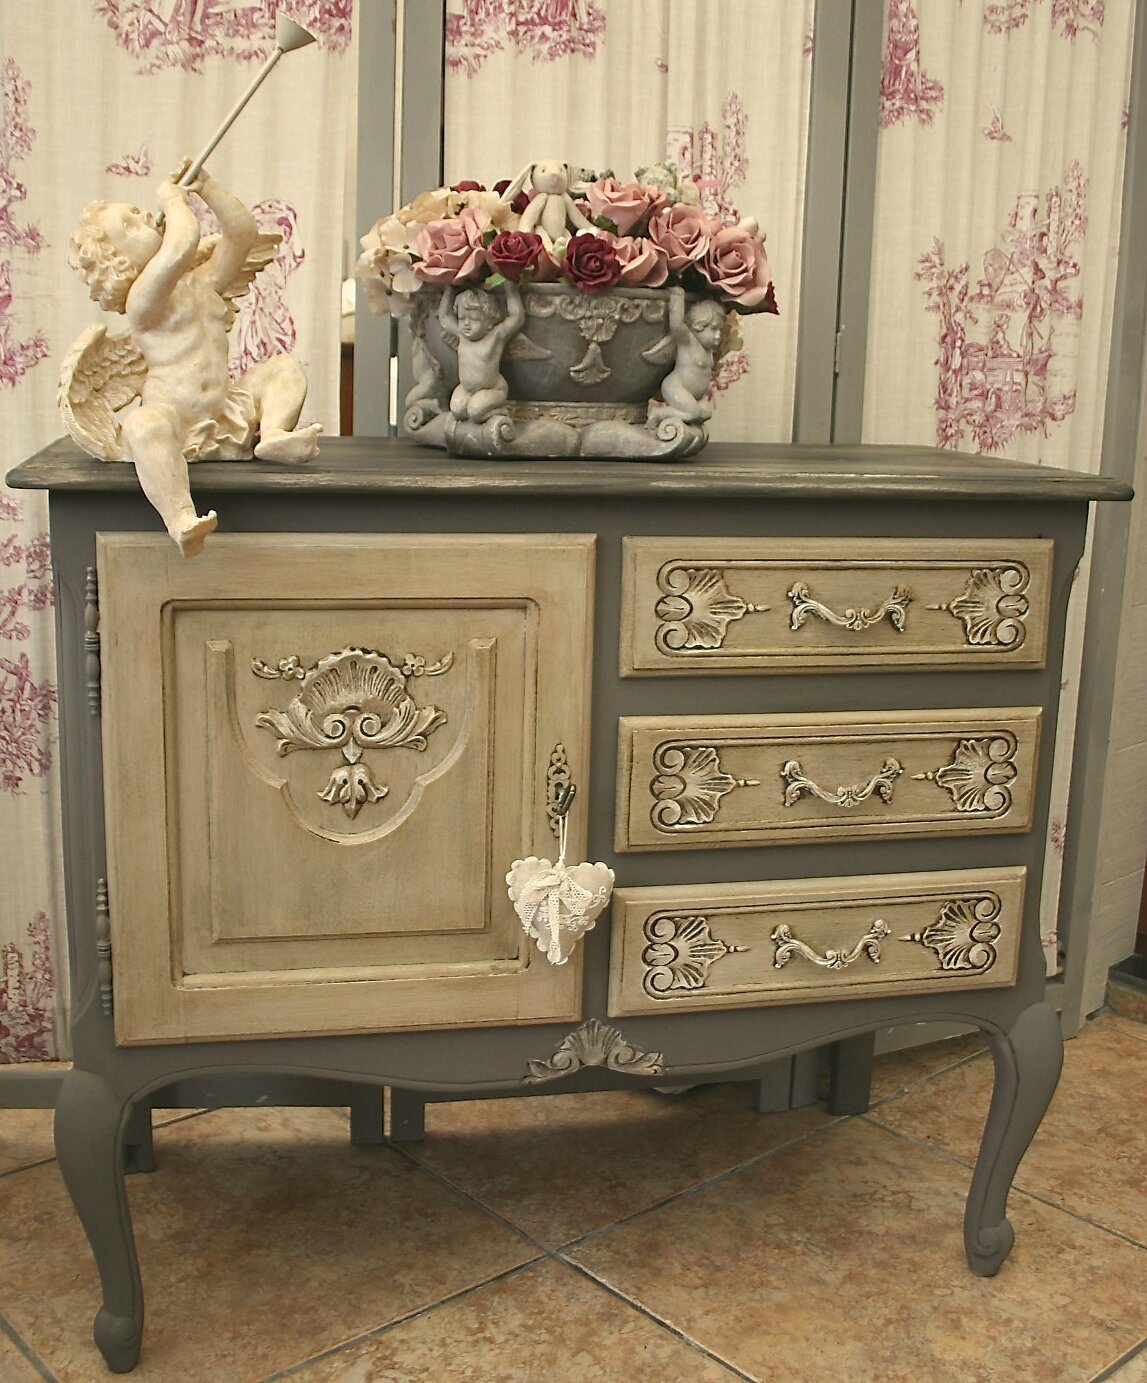 adorable meuble en ch ne de style louis xv commode patin e blog de missantic pour plus d. Black Bedroom Furniture Sets. Home Design Ideas